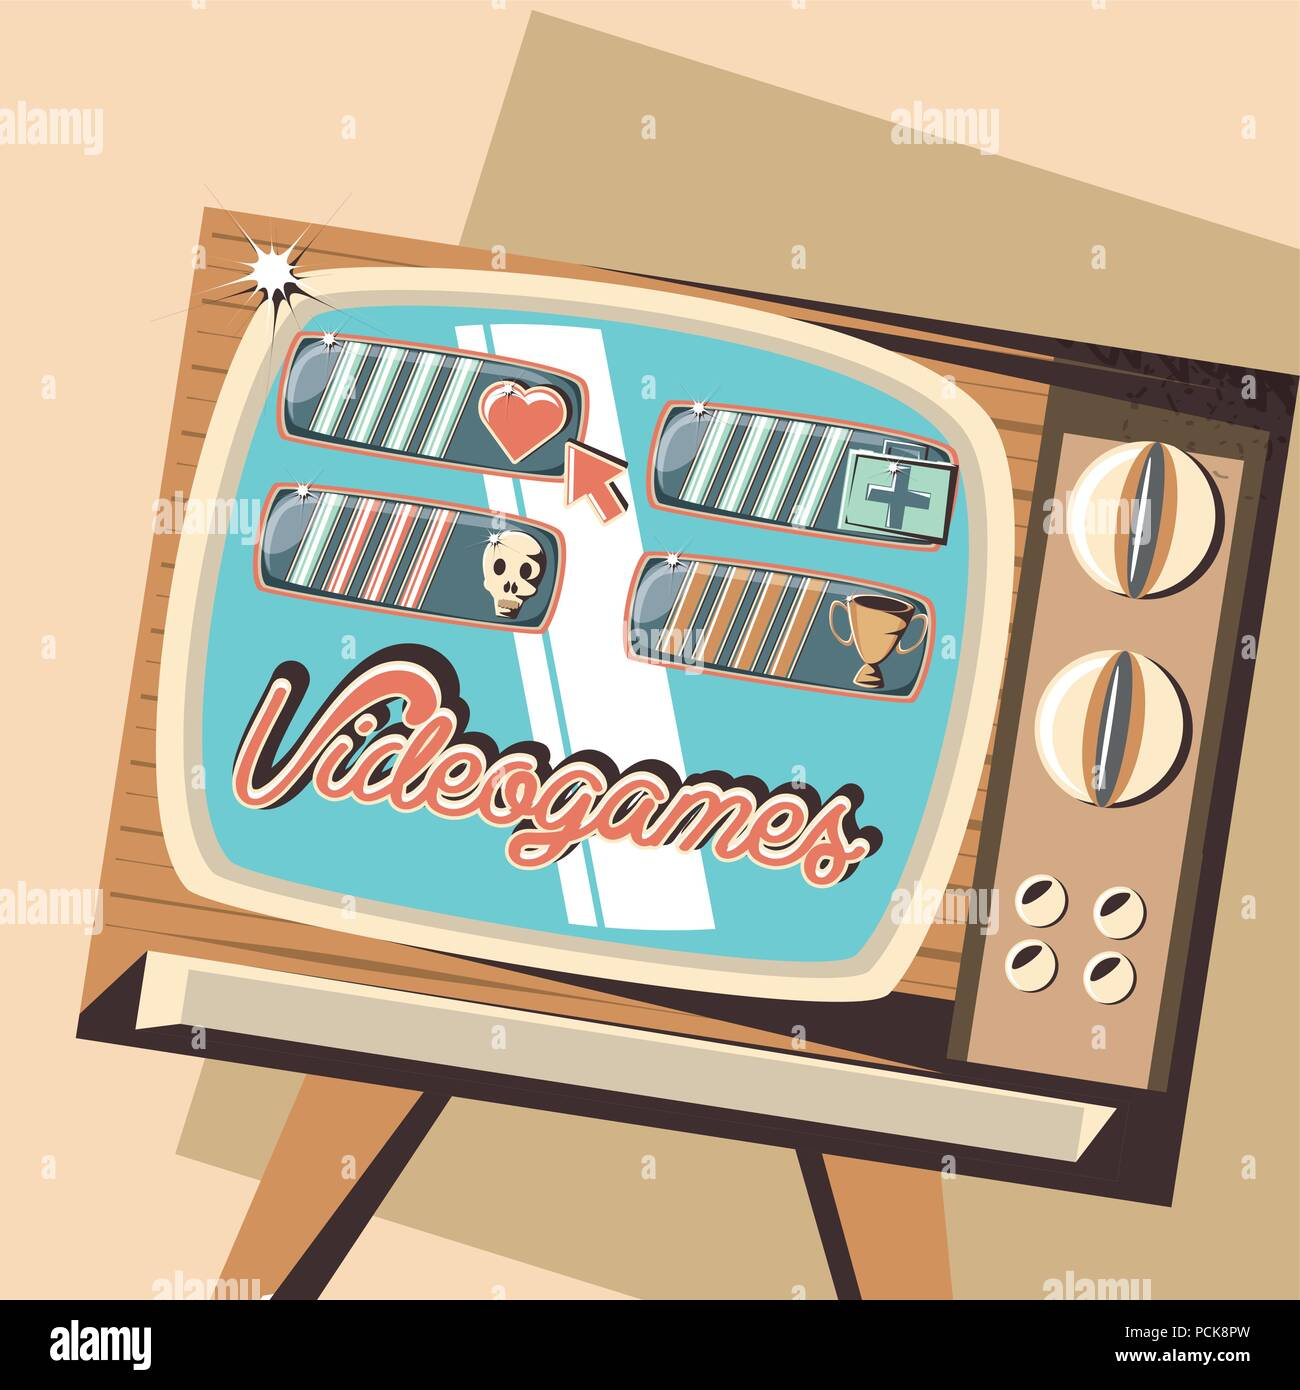 retro videogames design with retro television icon over yellow background, colorful design. vector illustration - Stock Image